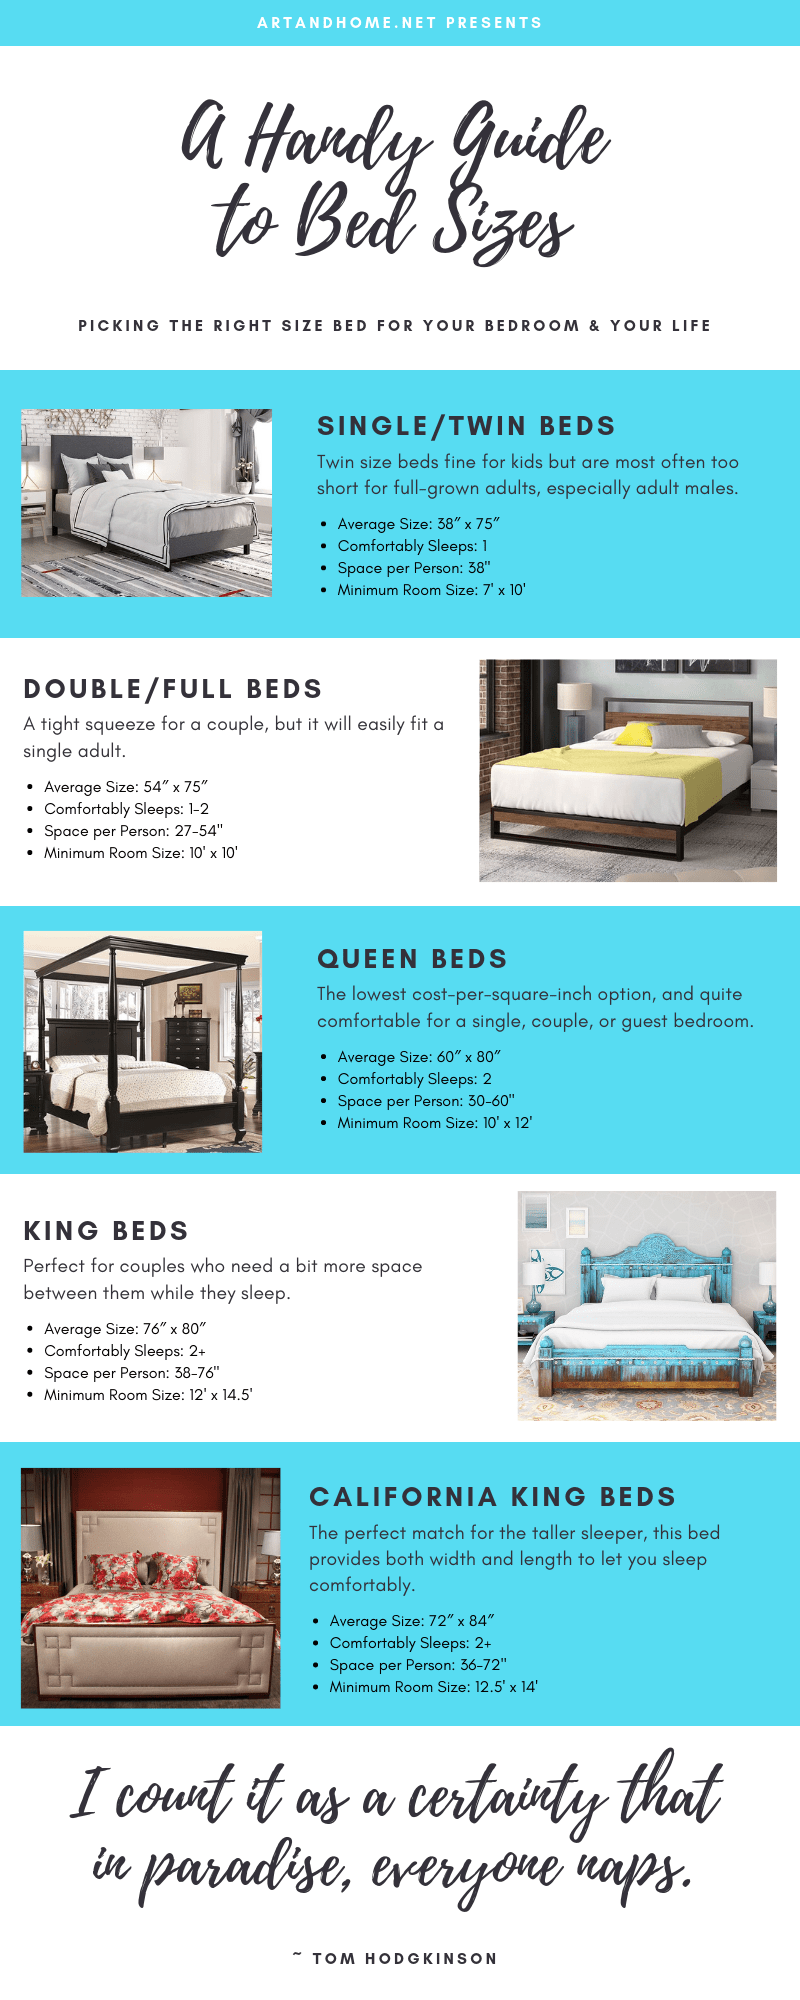 A Handy Guide to Bed Sizes: Infographic